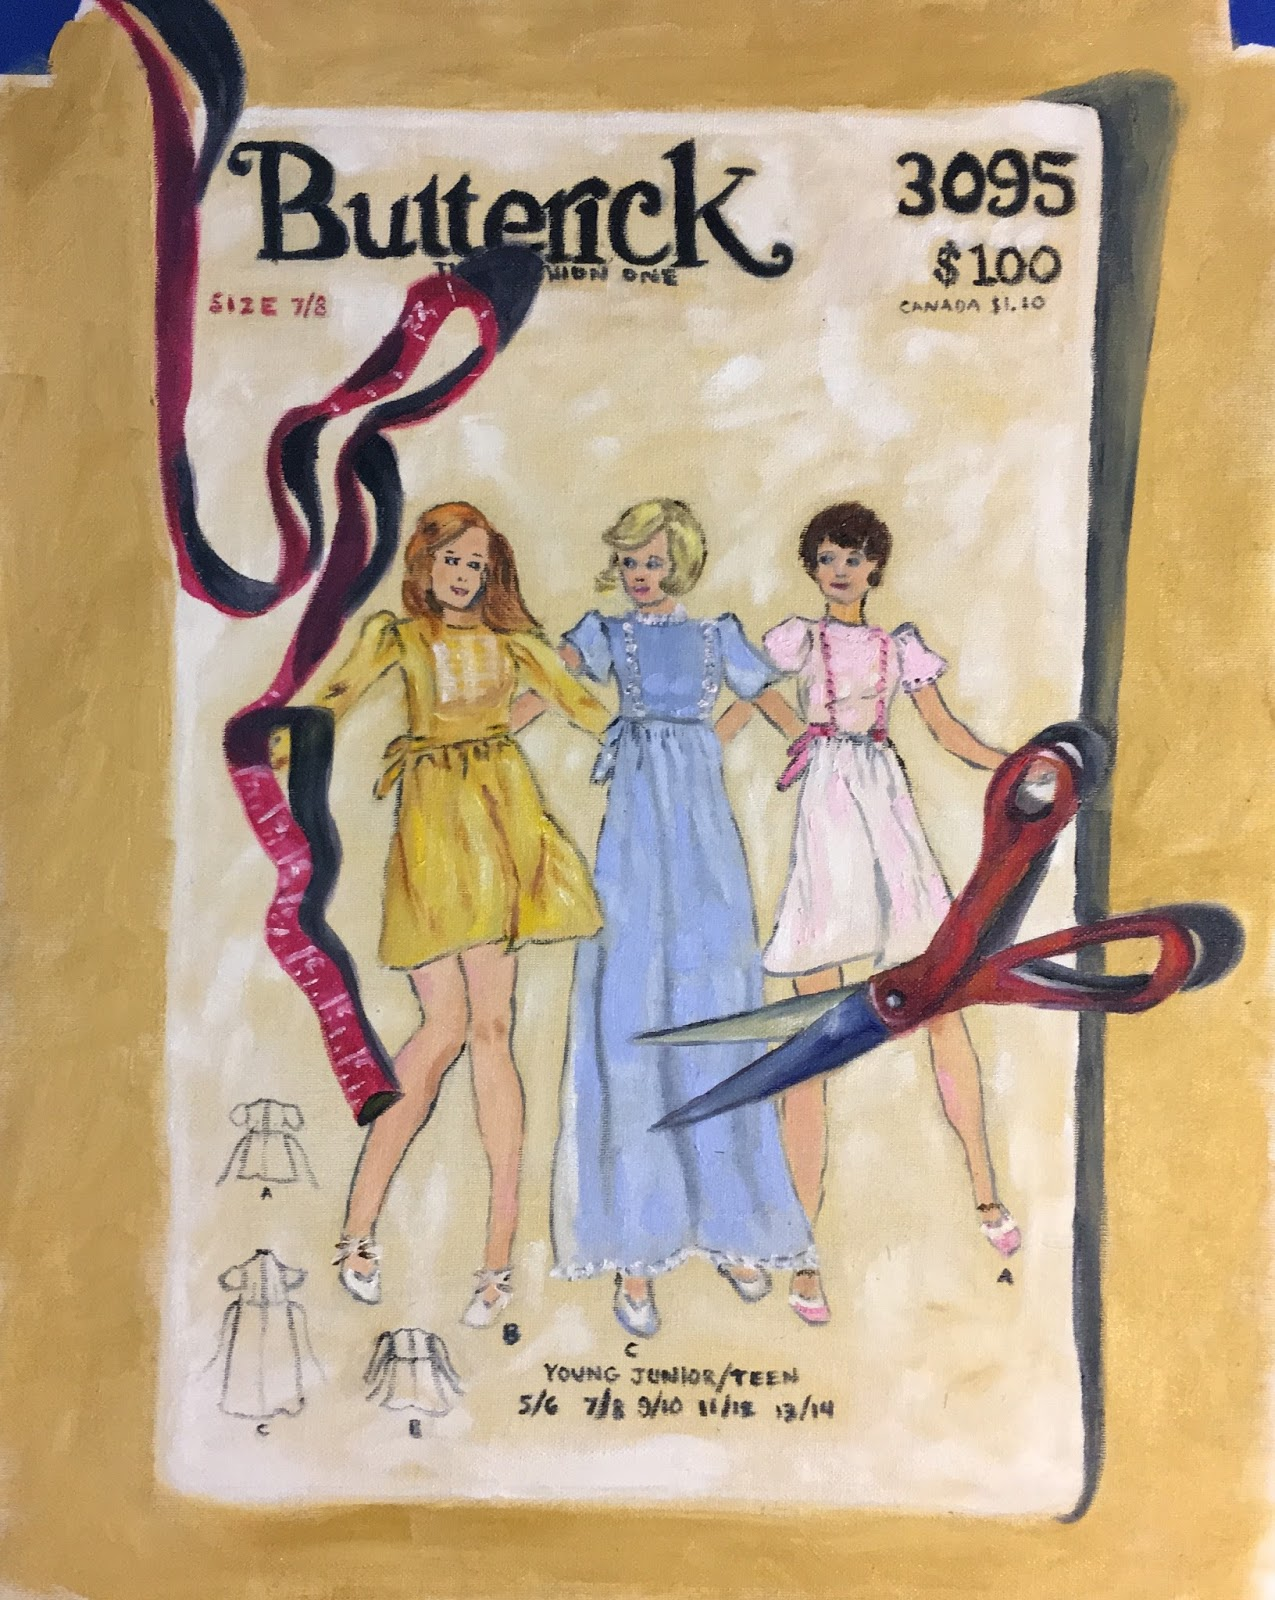 For Some Reason I Became Obsessed With Finding A Vintage Sewing Pattern To Paint I Dont Really Know Why I Went On Ebay And Found Lots Of Them For Around